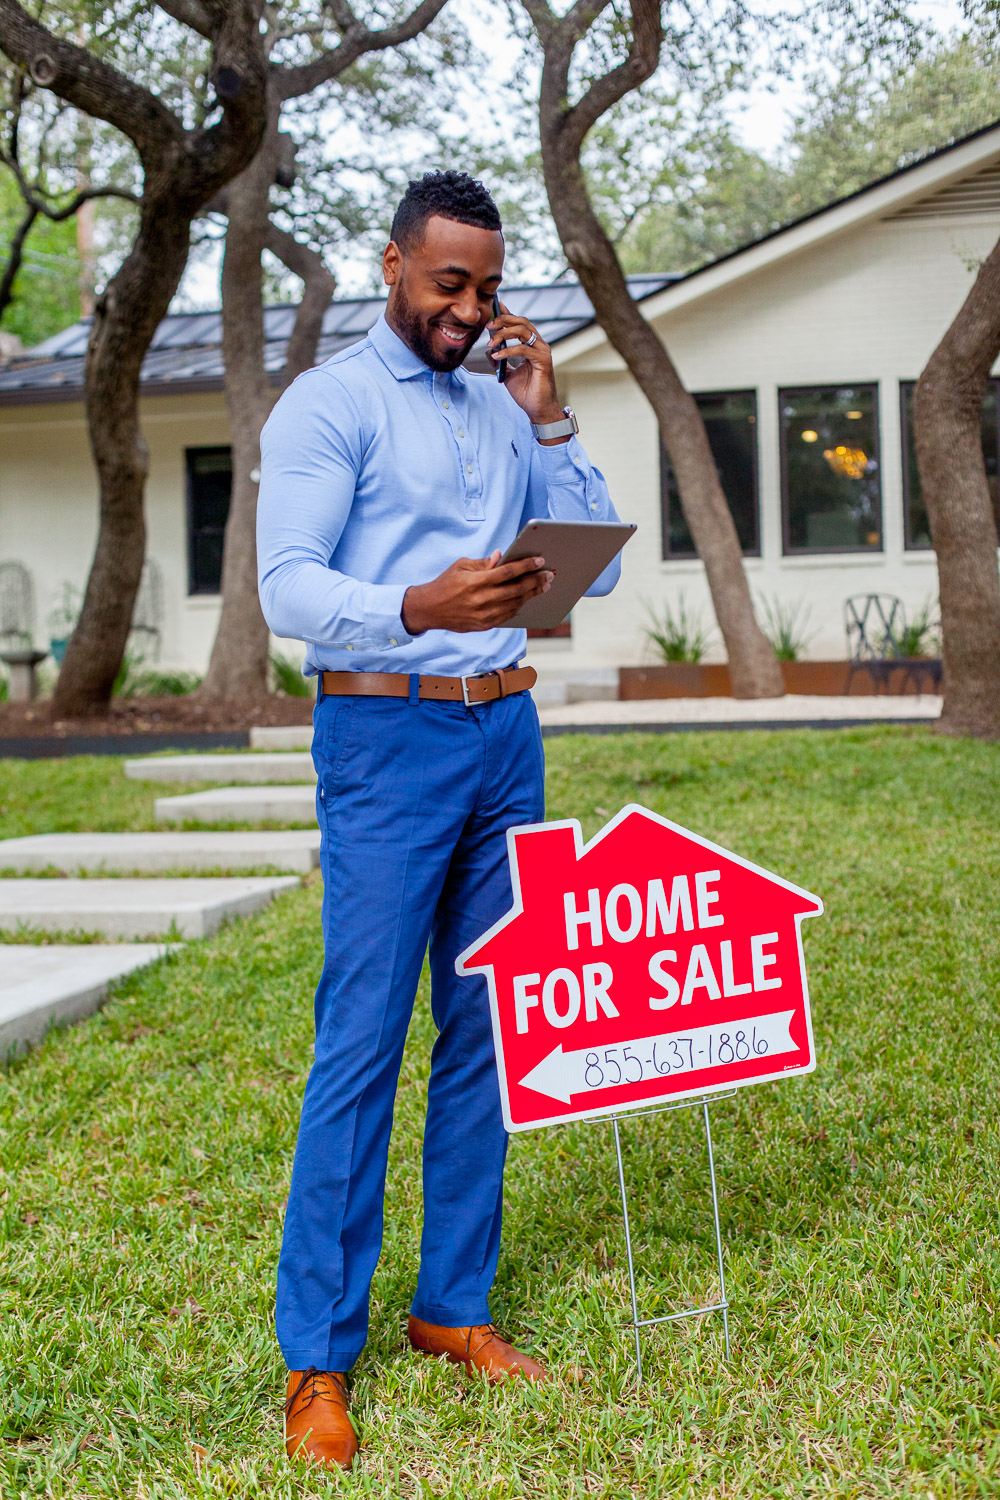 Blog - Getting Your Texas Real Estate License: Everything